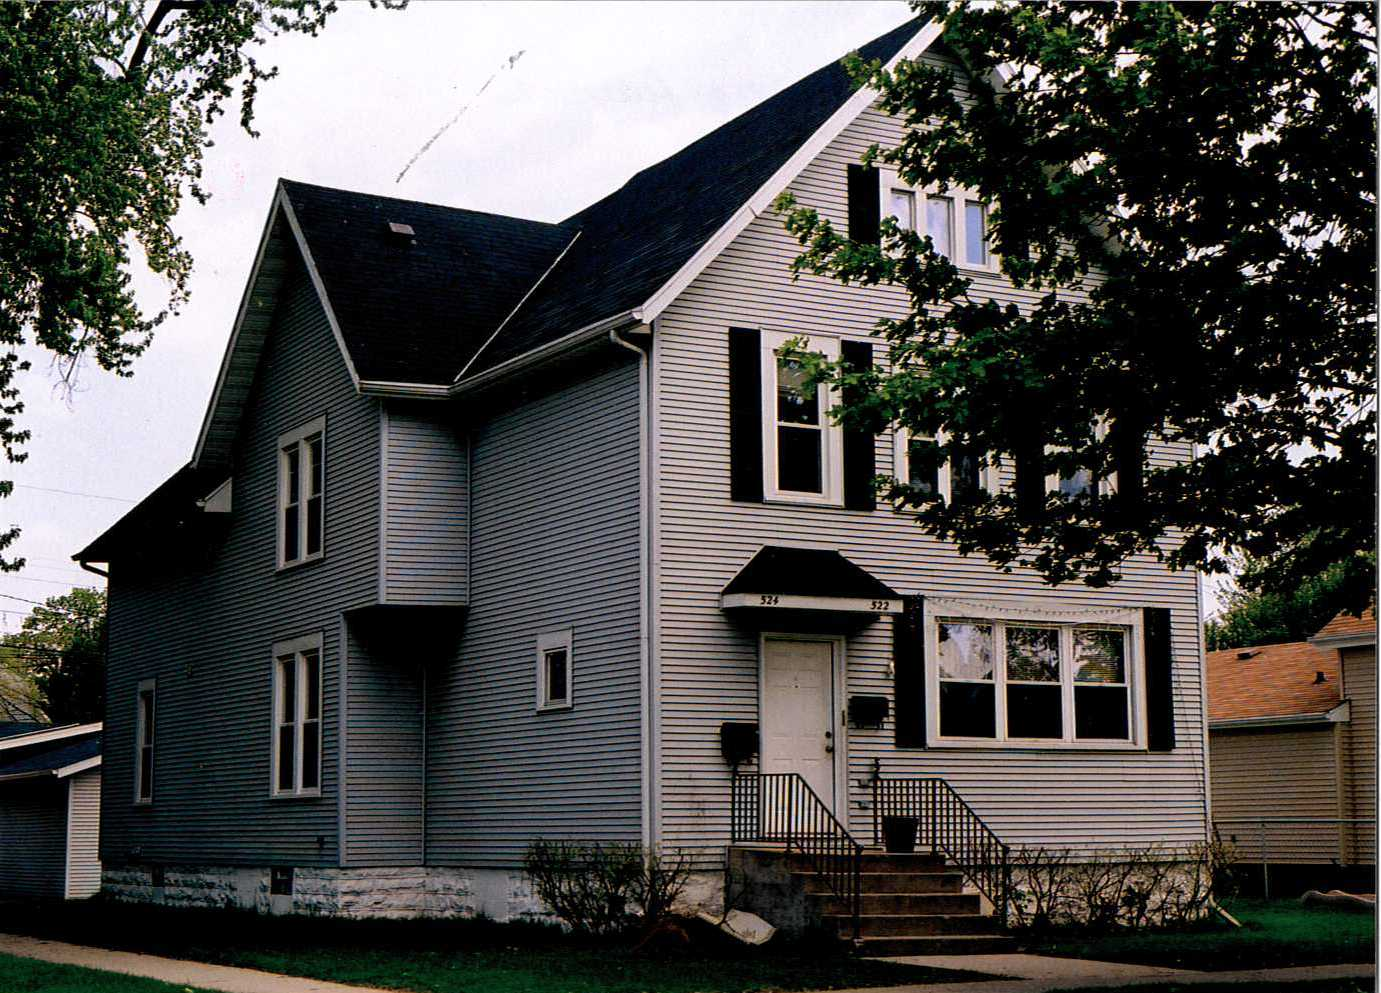 The house located at 524 North Maple Avenue.